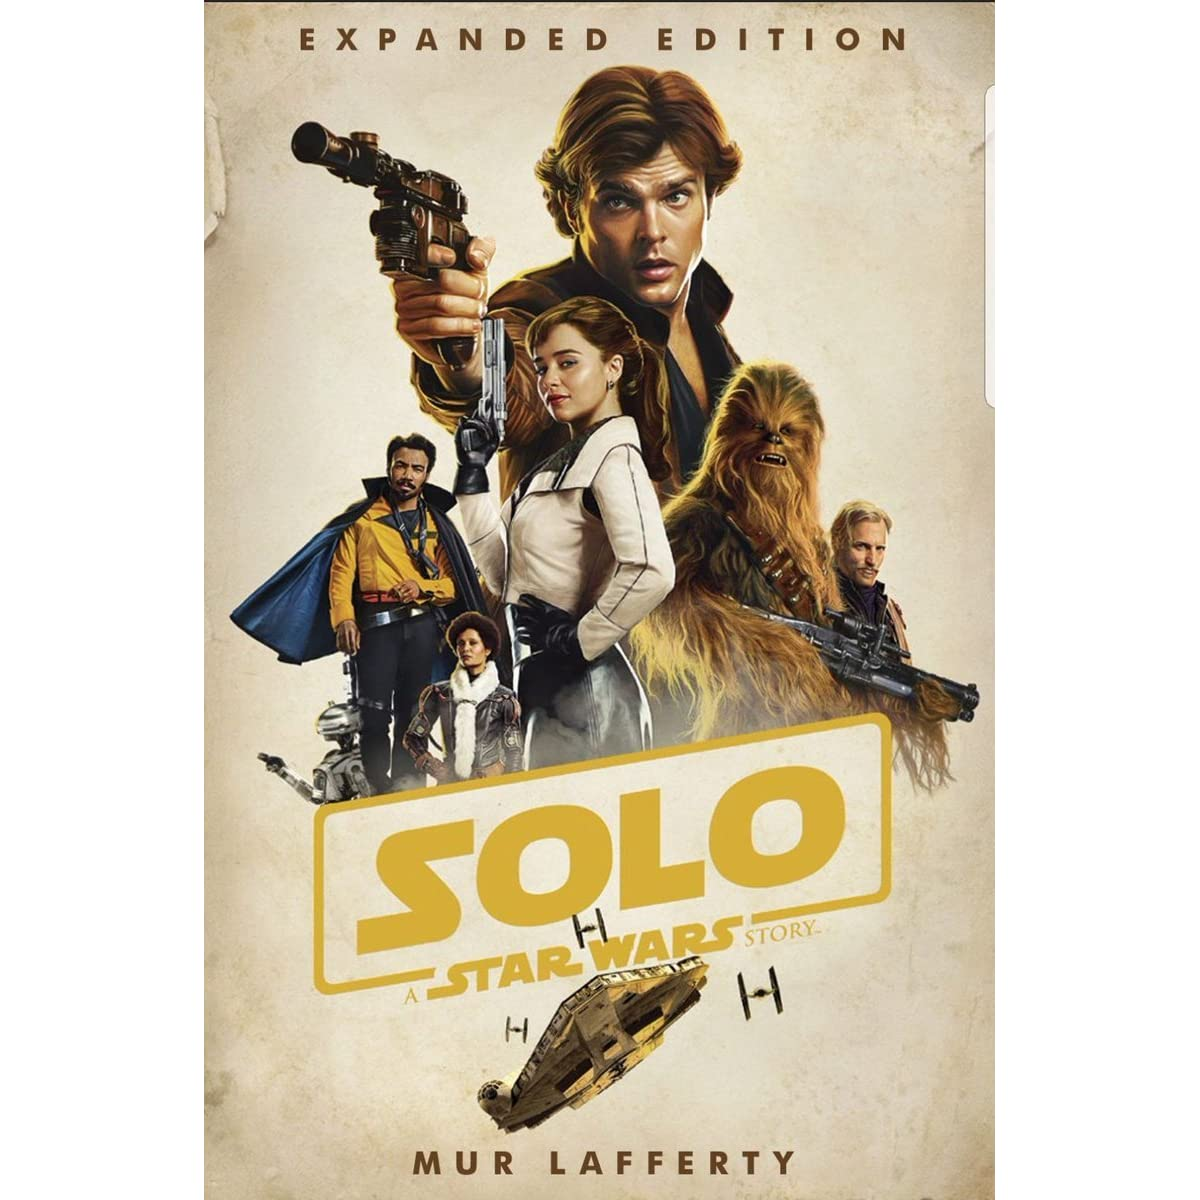 c7945472b Solo  A Star Wars Story  Expanded Edition by Mur Lafferty